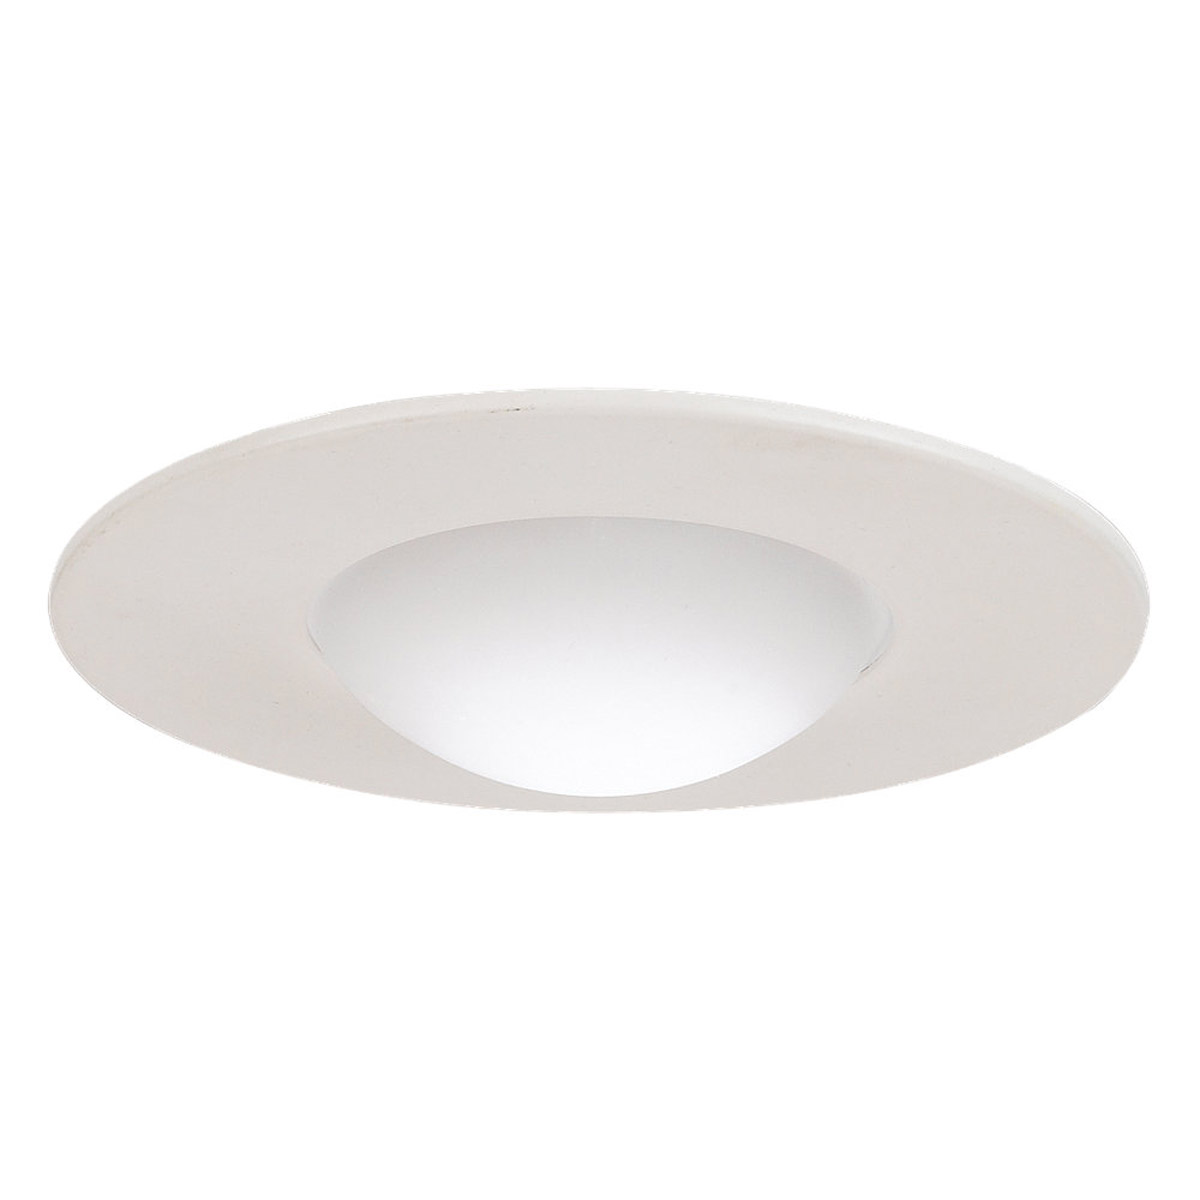 Sea Gull Lighting Signature Recessed Trim Only in White 1242AT-15 photo